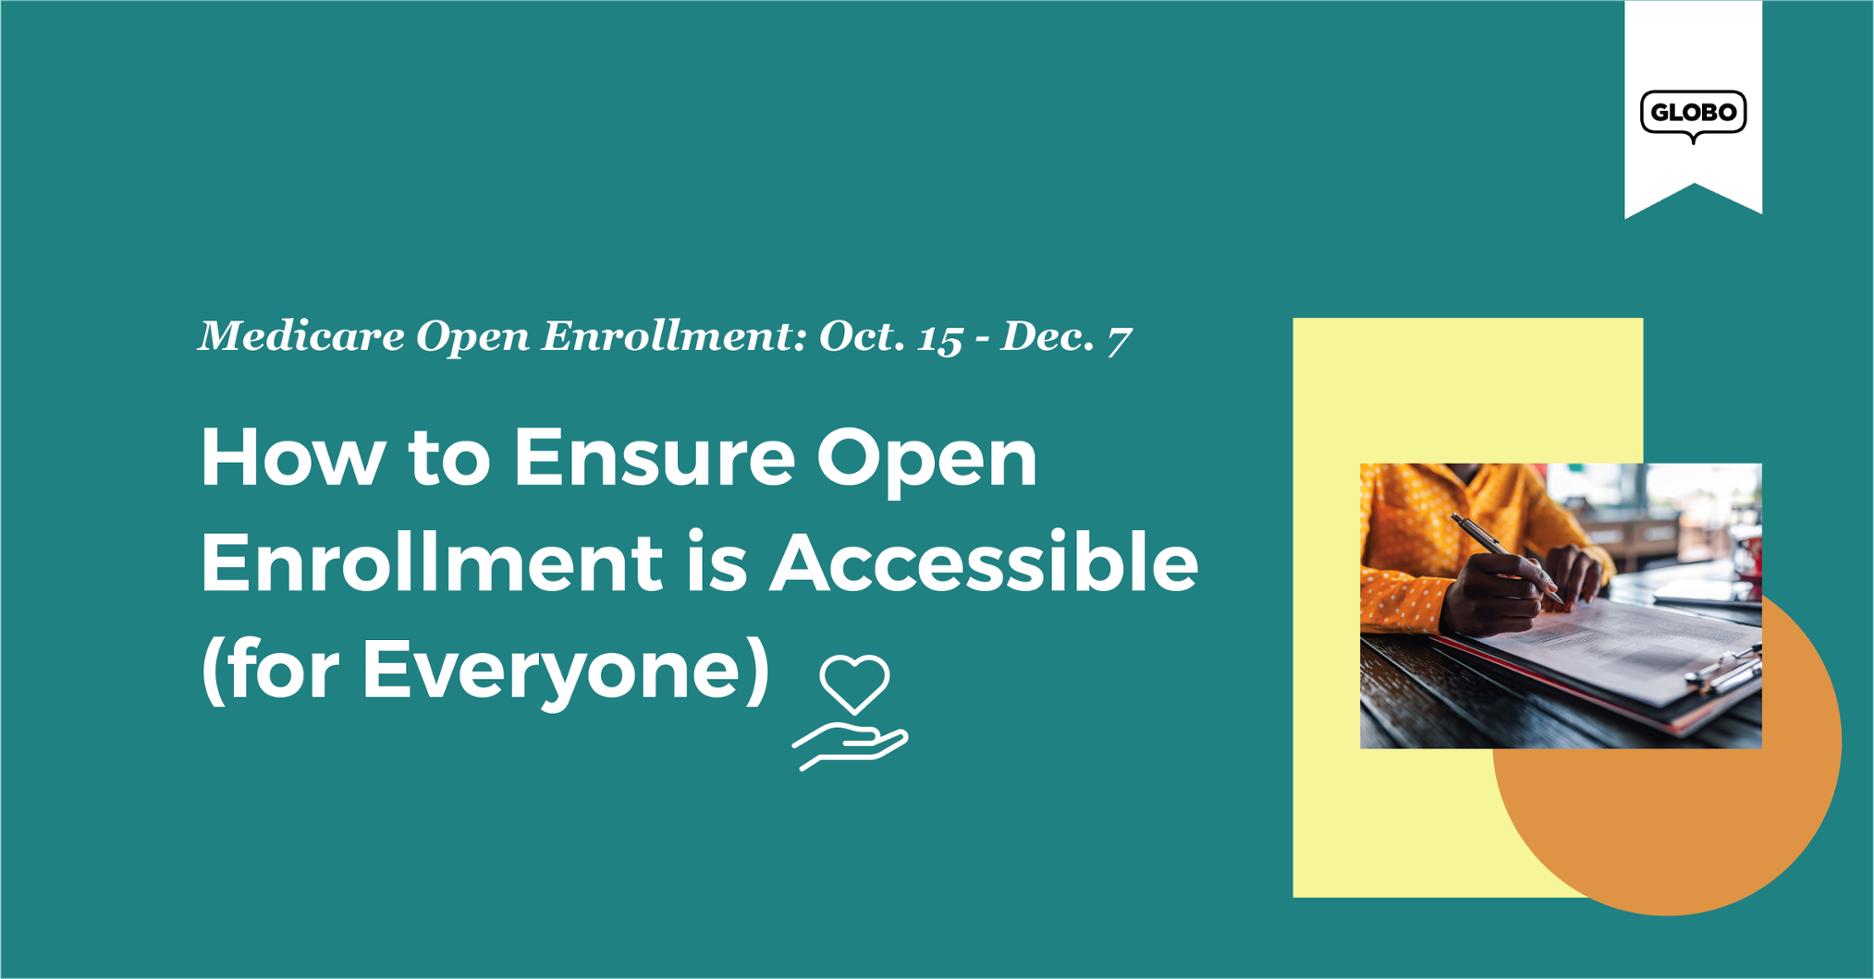 How to Ensure Open Enrollment is Accessible (for Everyone)